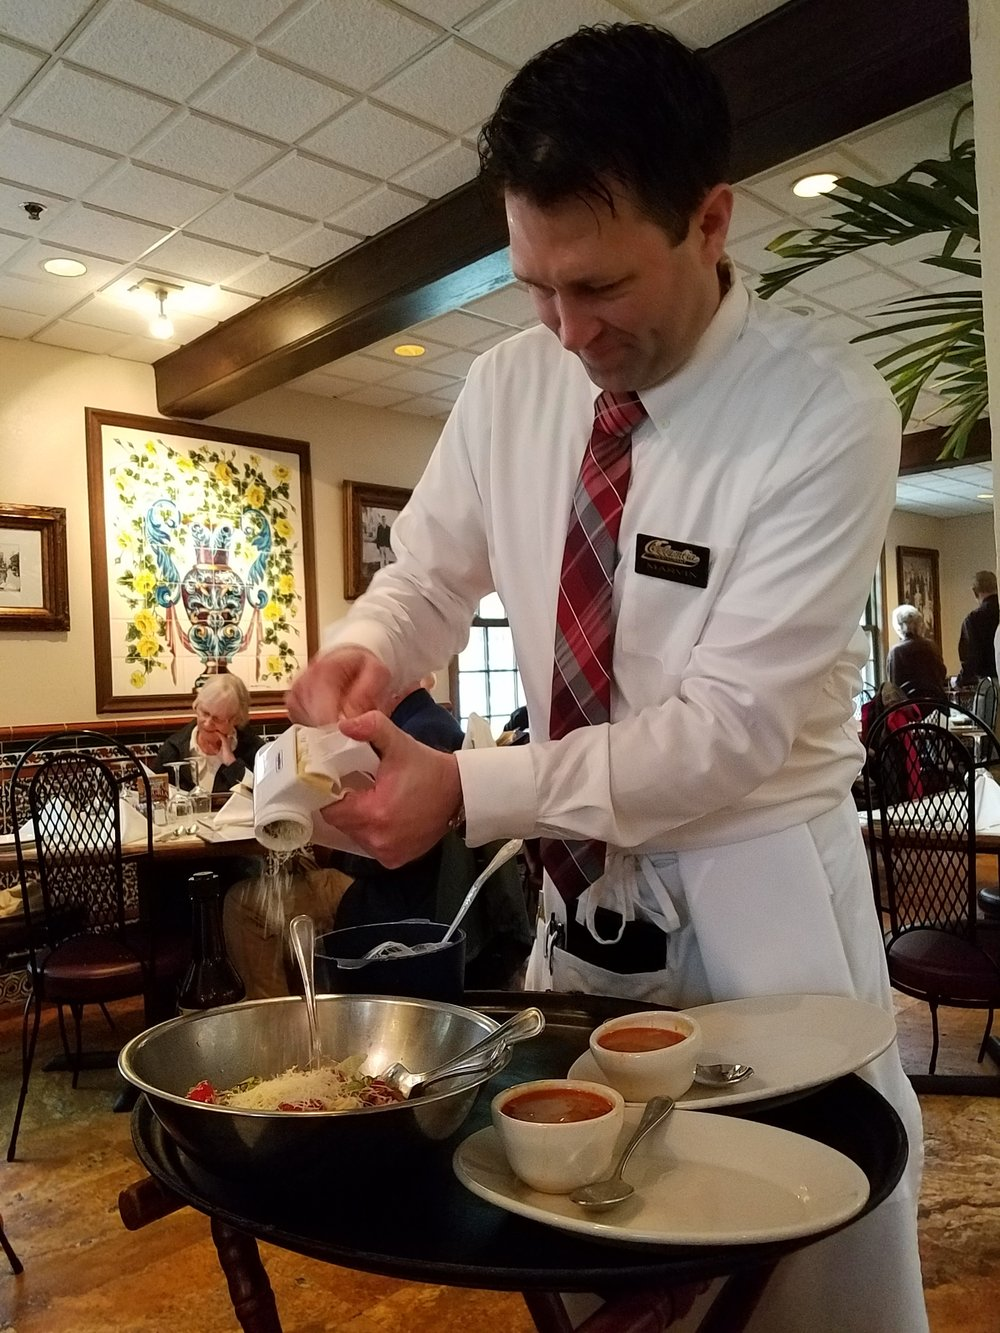 Tableside Service at Columbia Restaurant